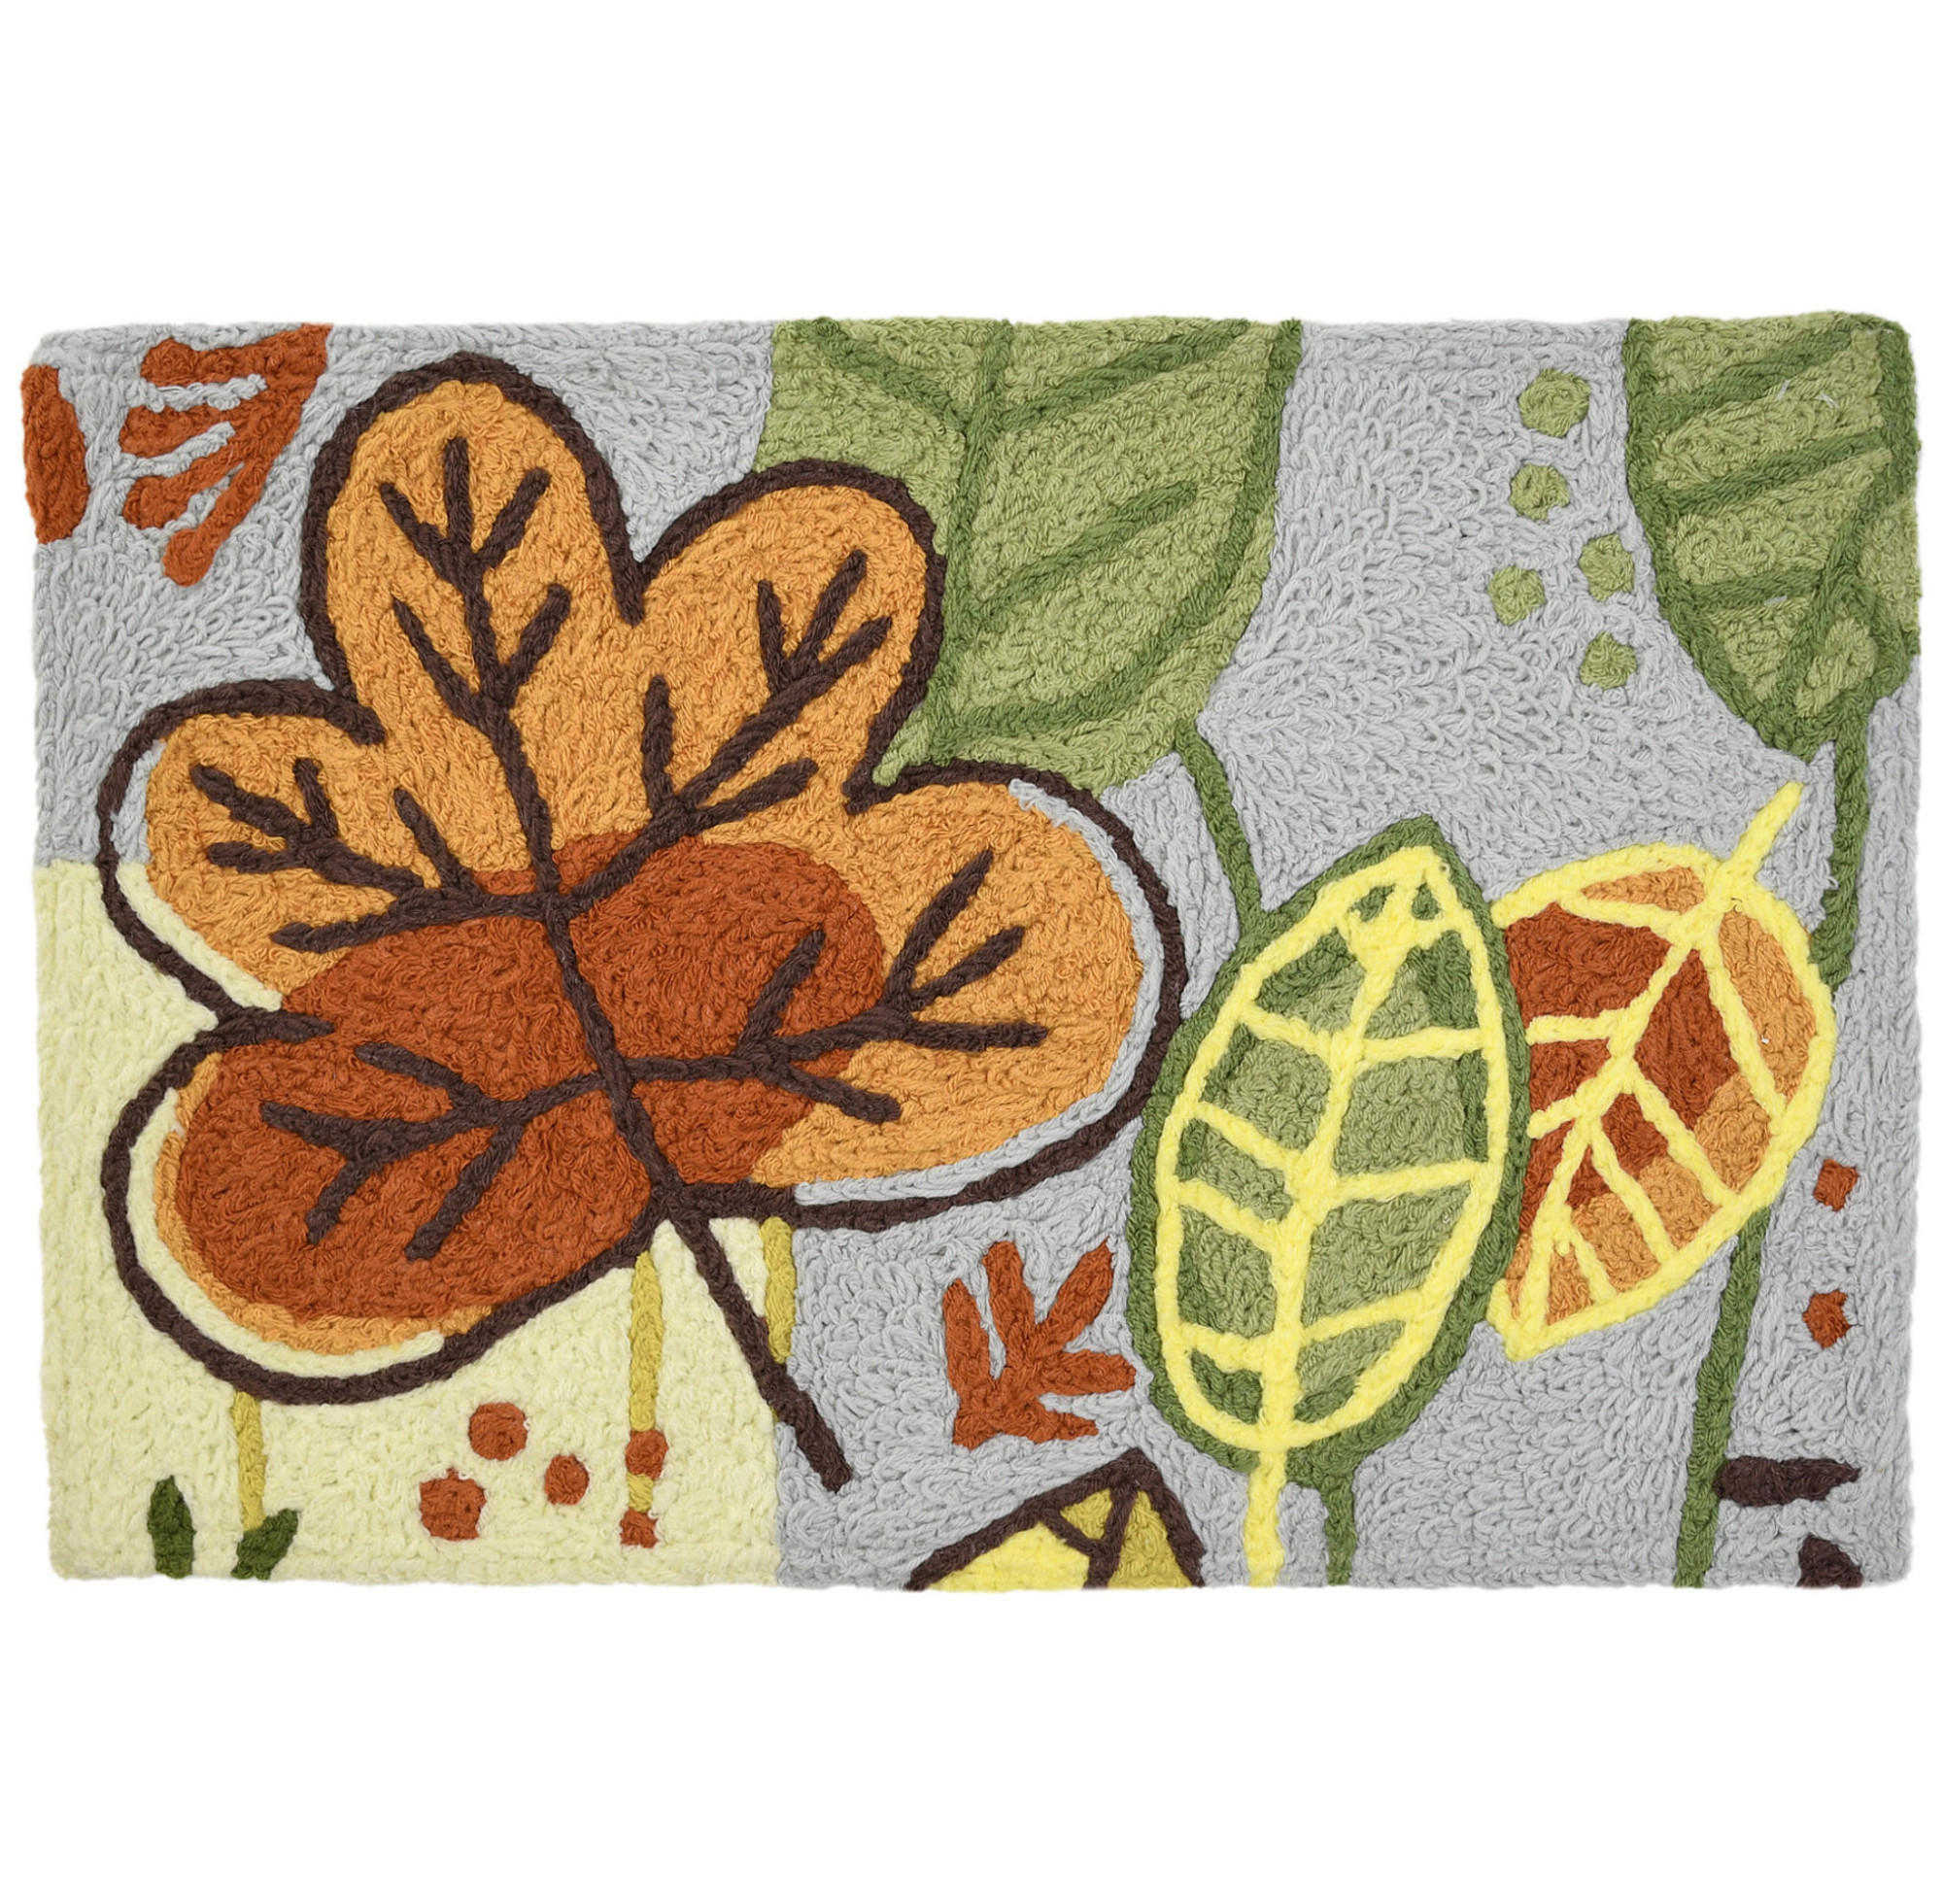 Leaves Themed Rug with Leaves Fall Colors 20 x 30 Jellybean Accent Rug